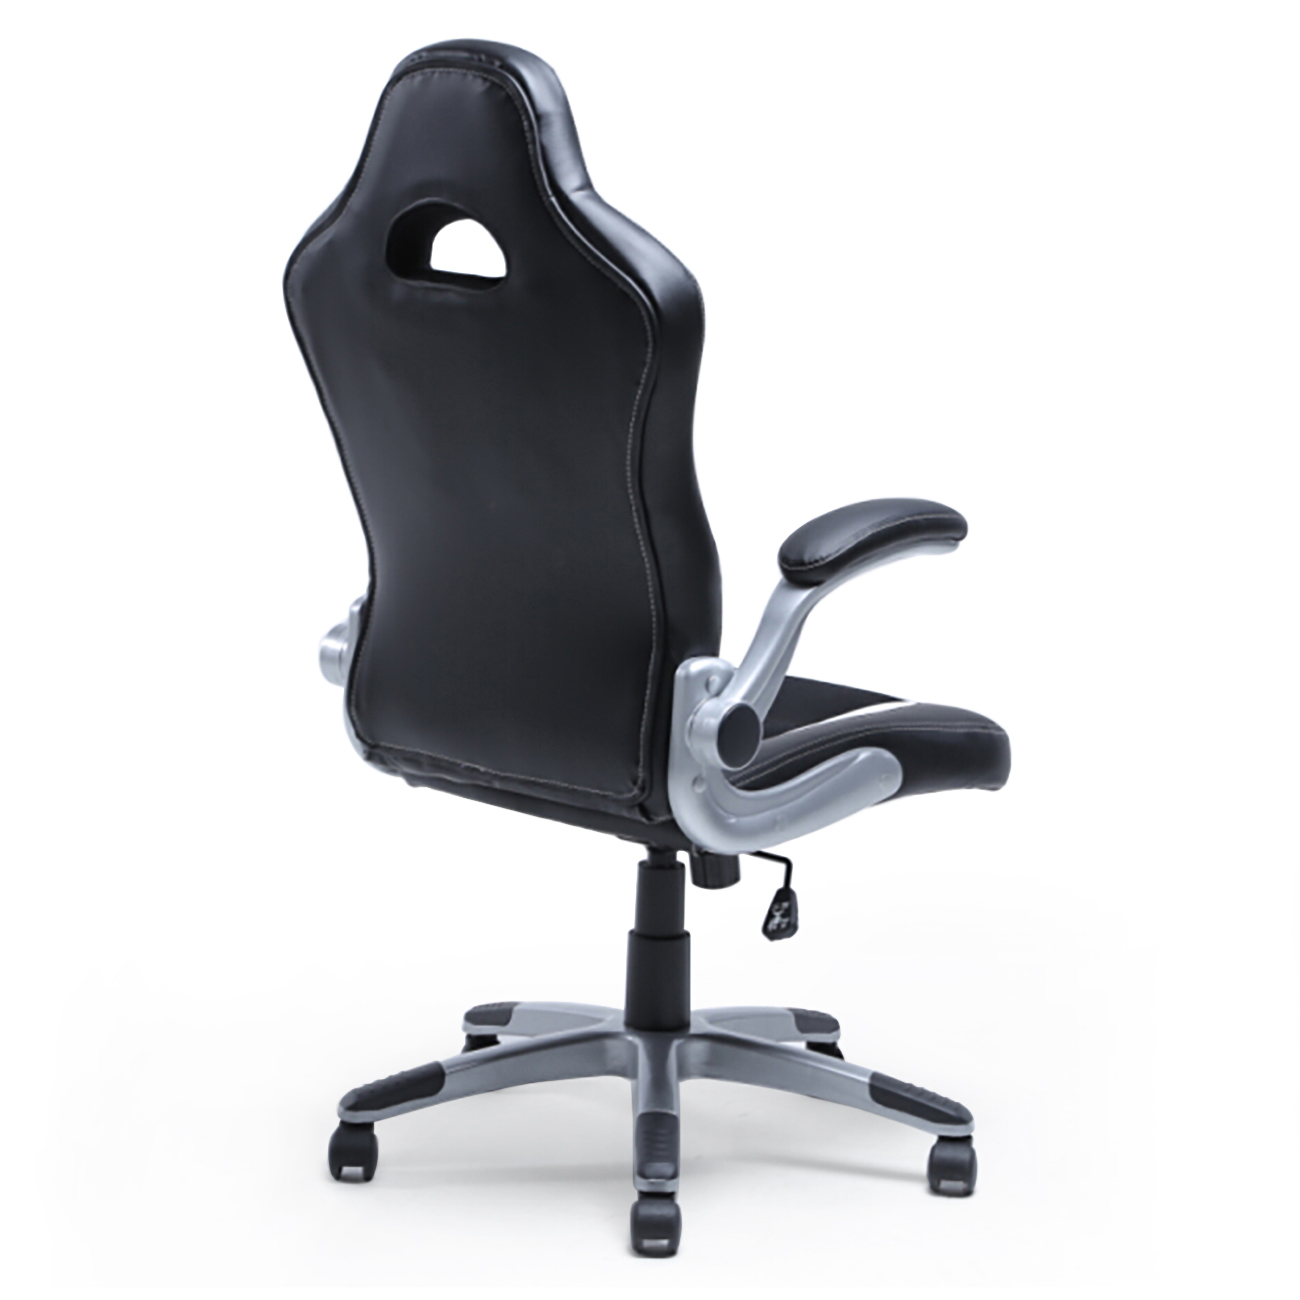 leather bucket chair adult potty office ergonomic computer pu desk race car